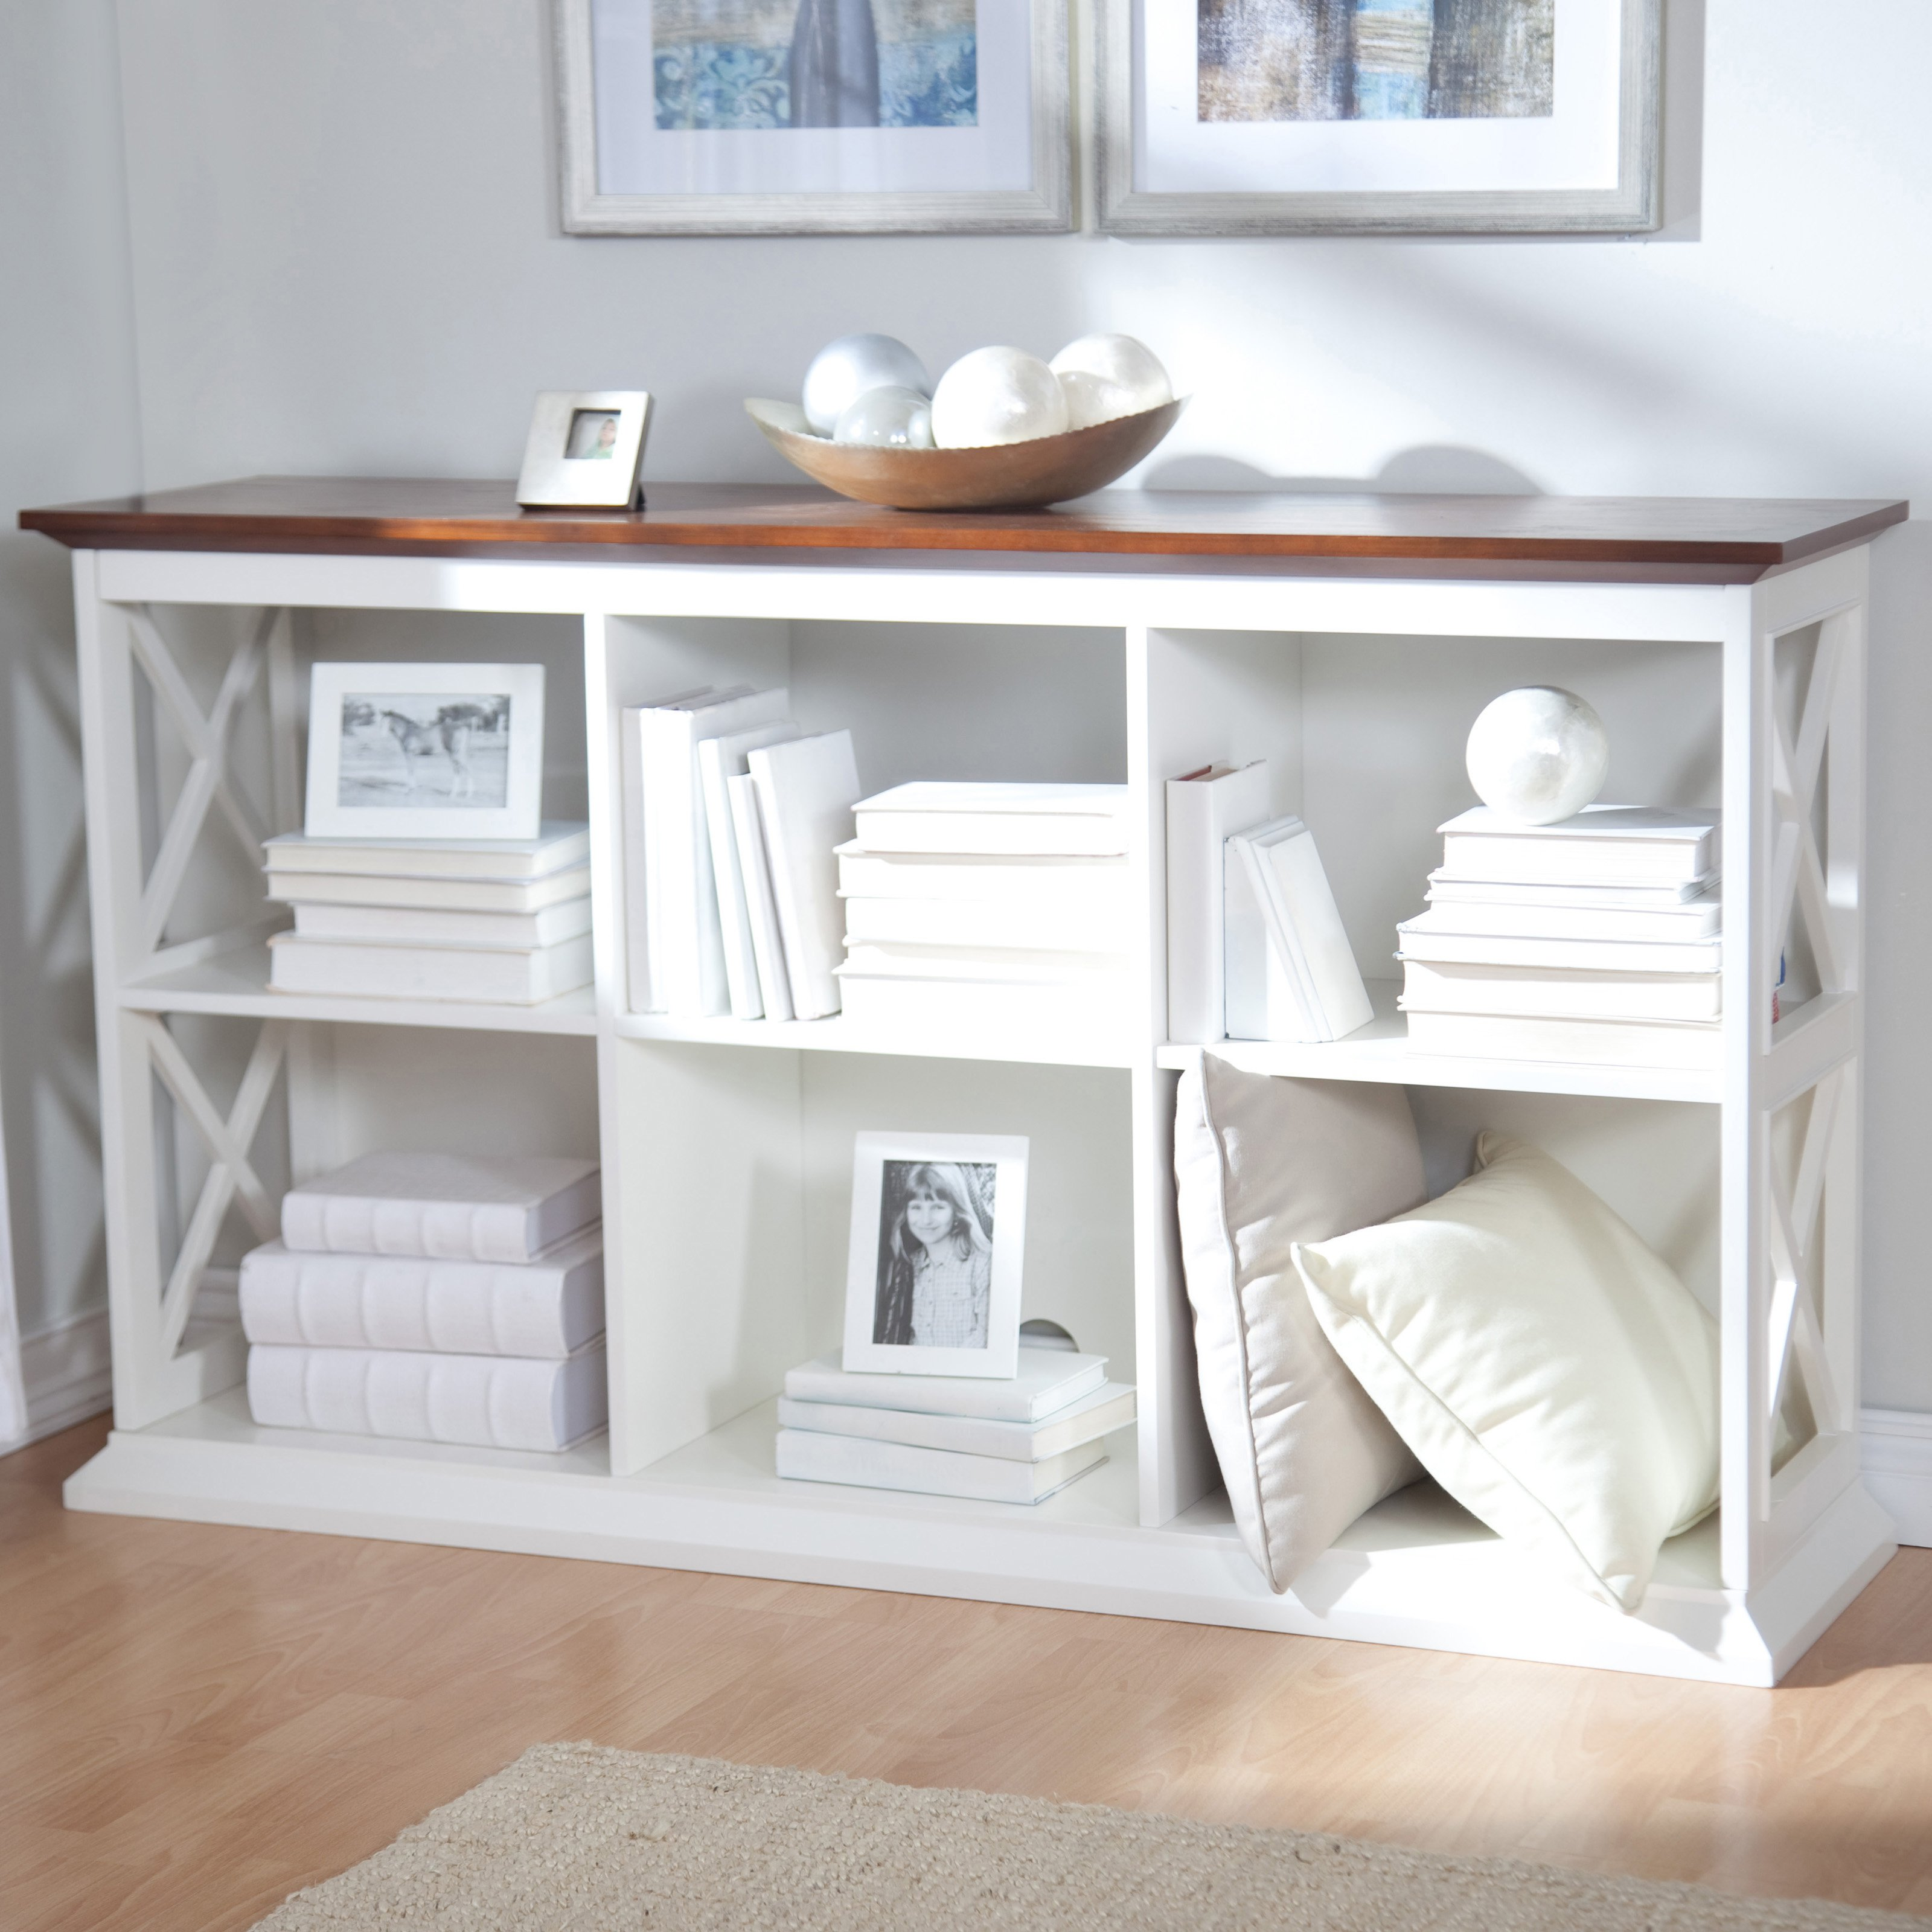 Belham Living Hampton Console Table 2 Shelf Bookcase - White/Oak